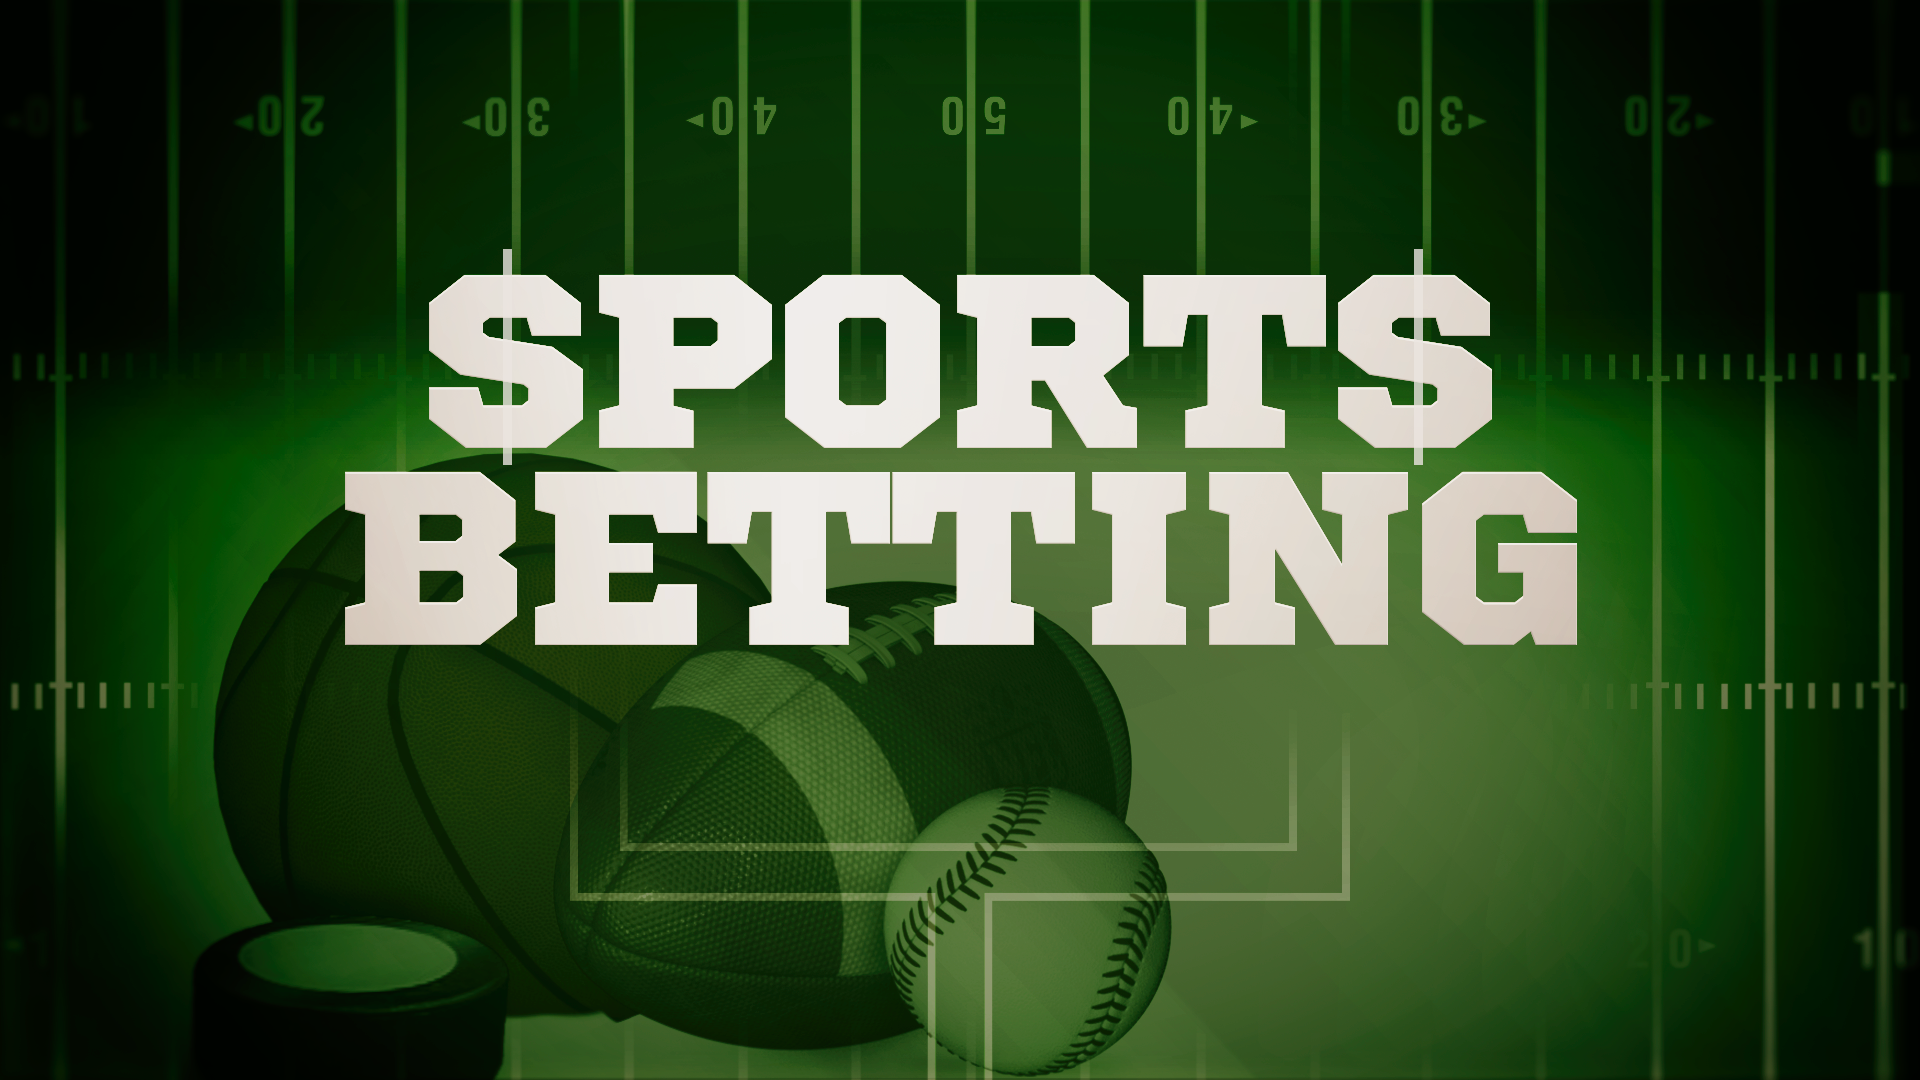 Express bets: is the risk justified?